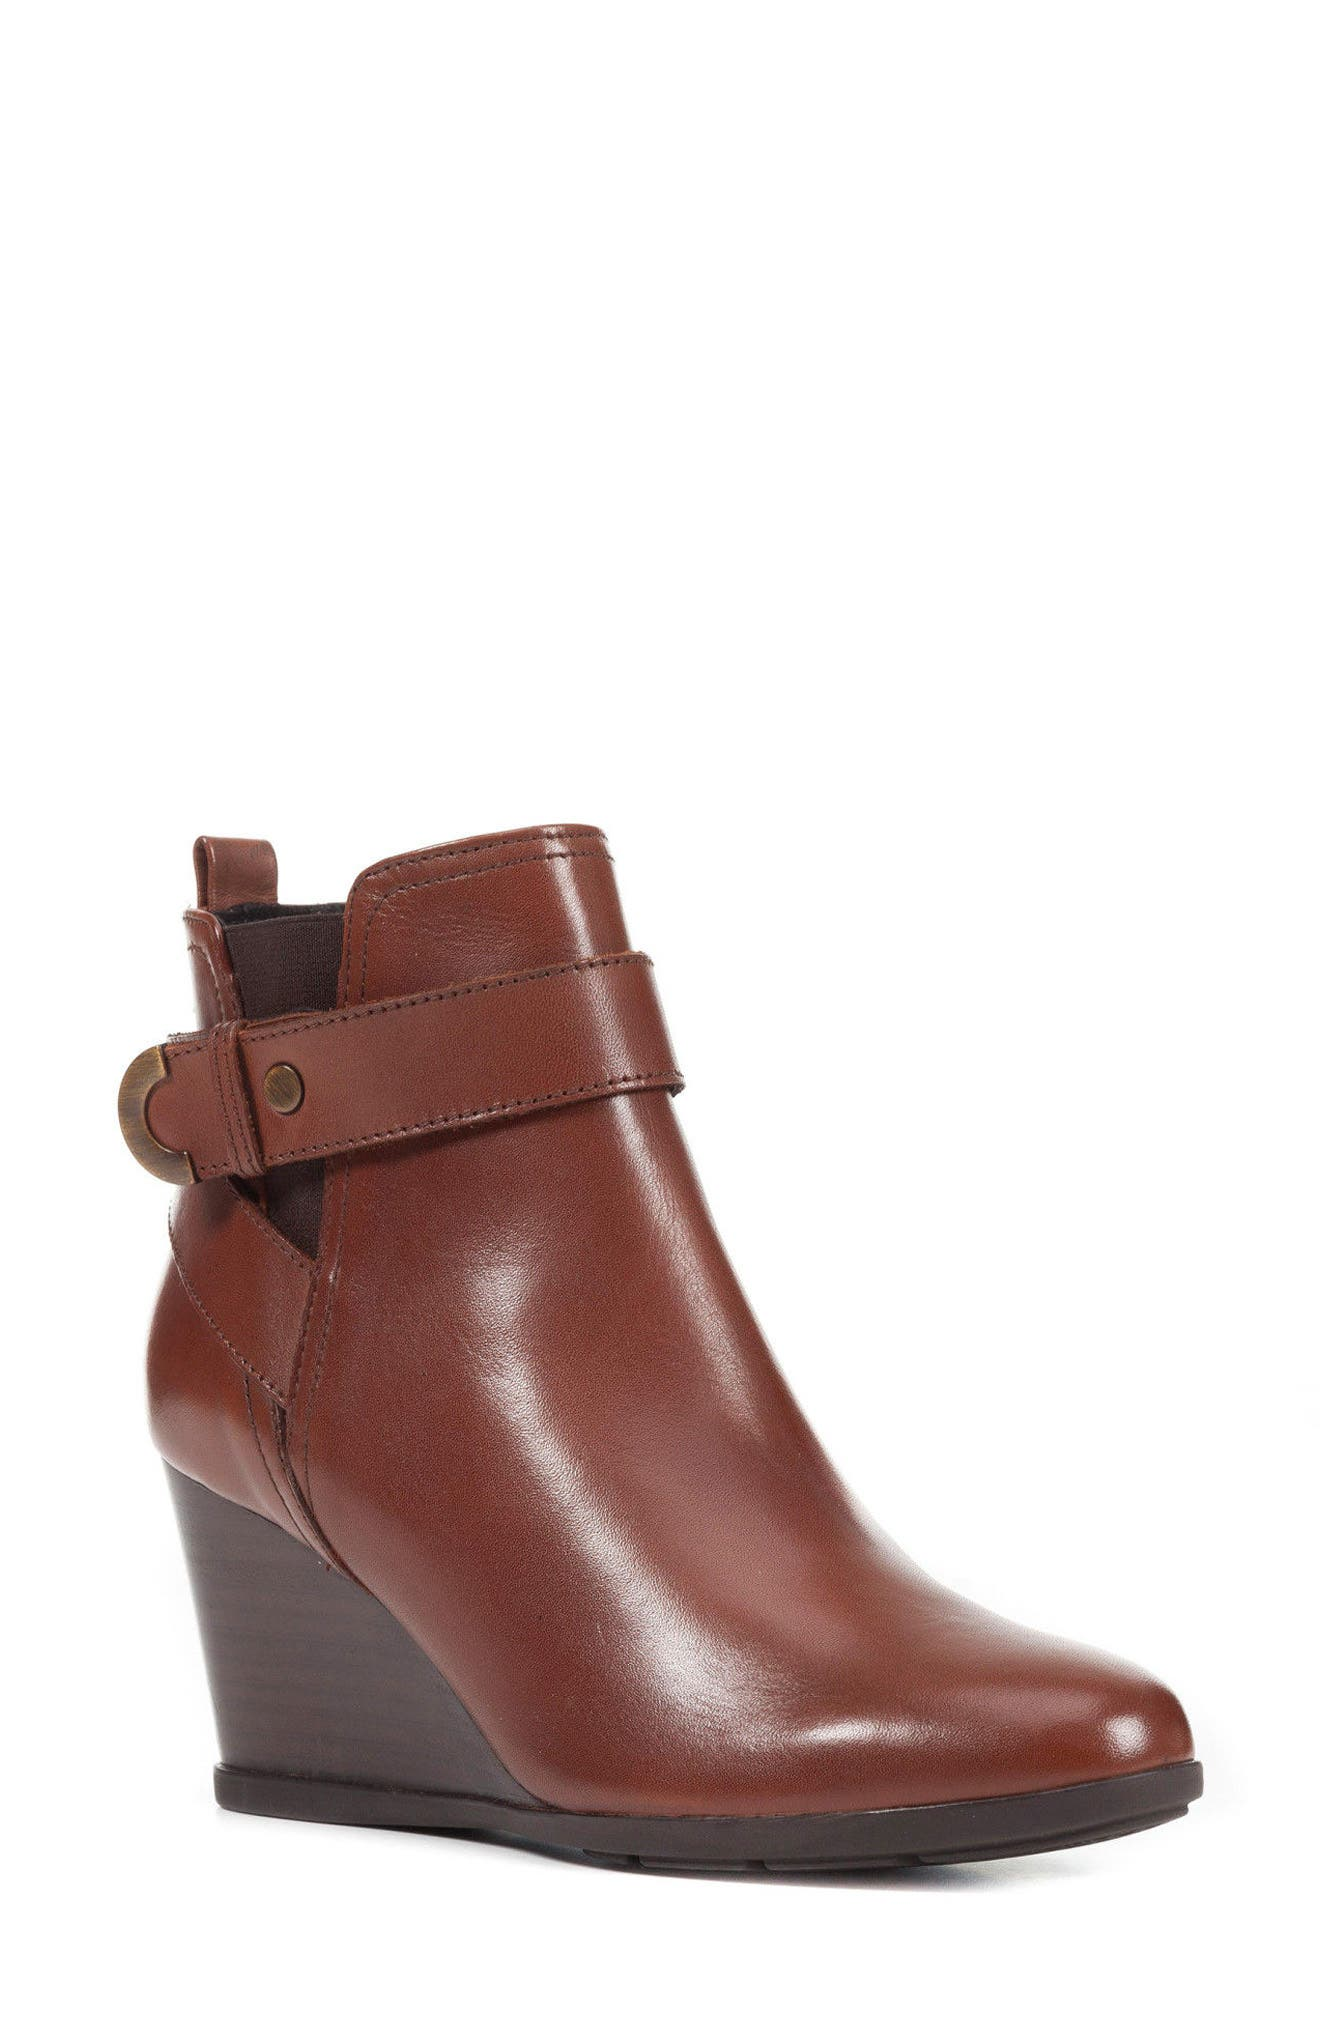 Inspiration Buckle Wedge Bootie,                         Main,                         color, Brown Leather